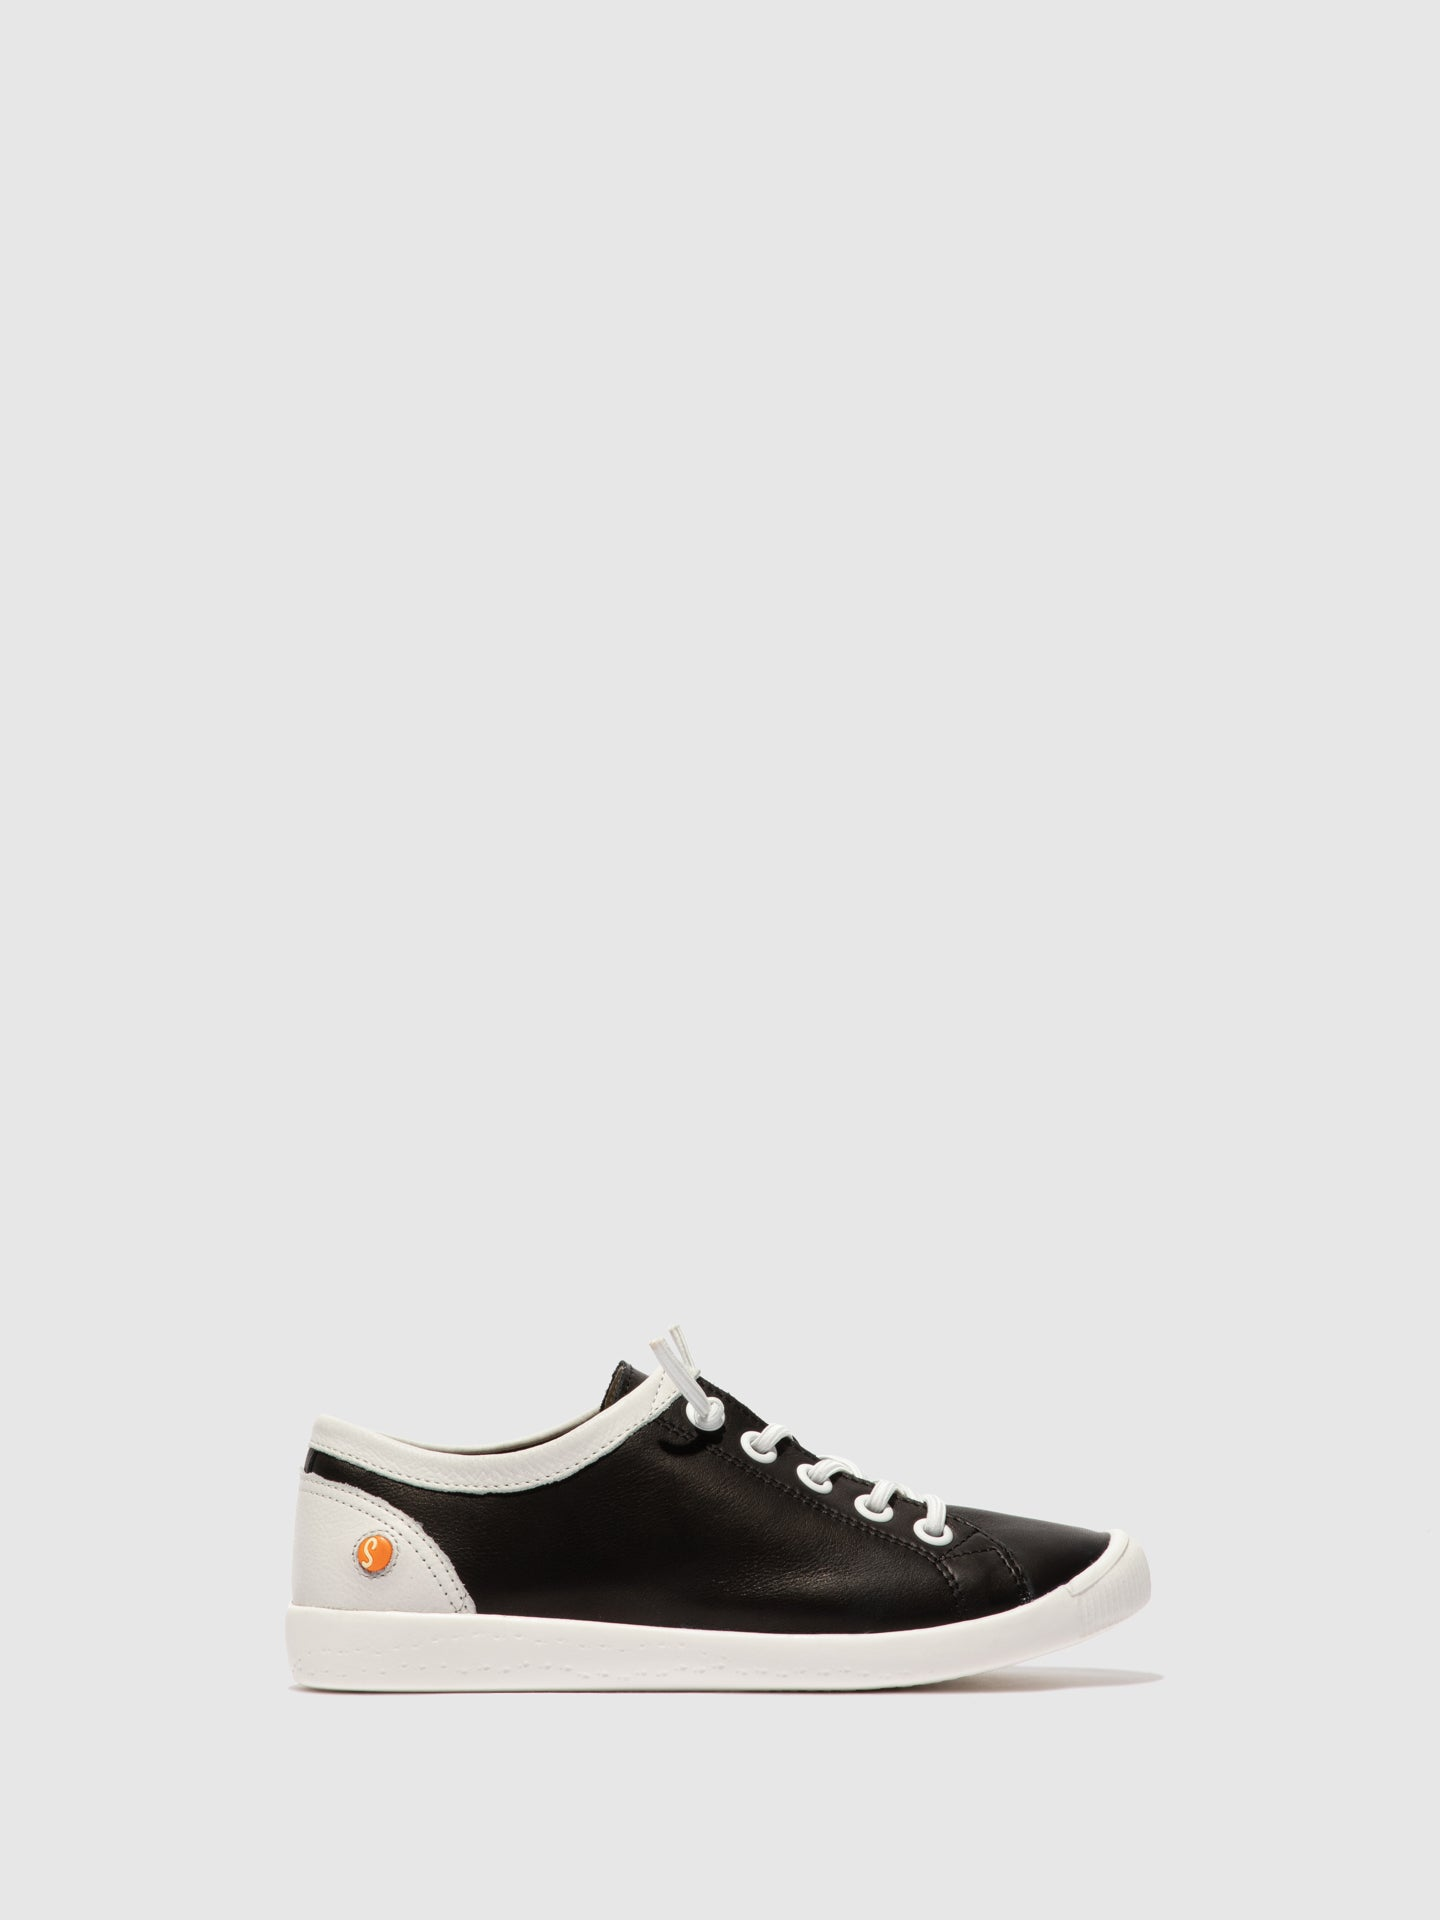 Softinos Slip-on Trainers ISLAII557SOF SUPPLE BLACK/WHITE